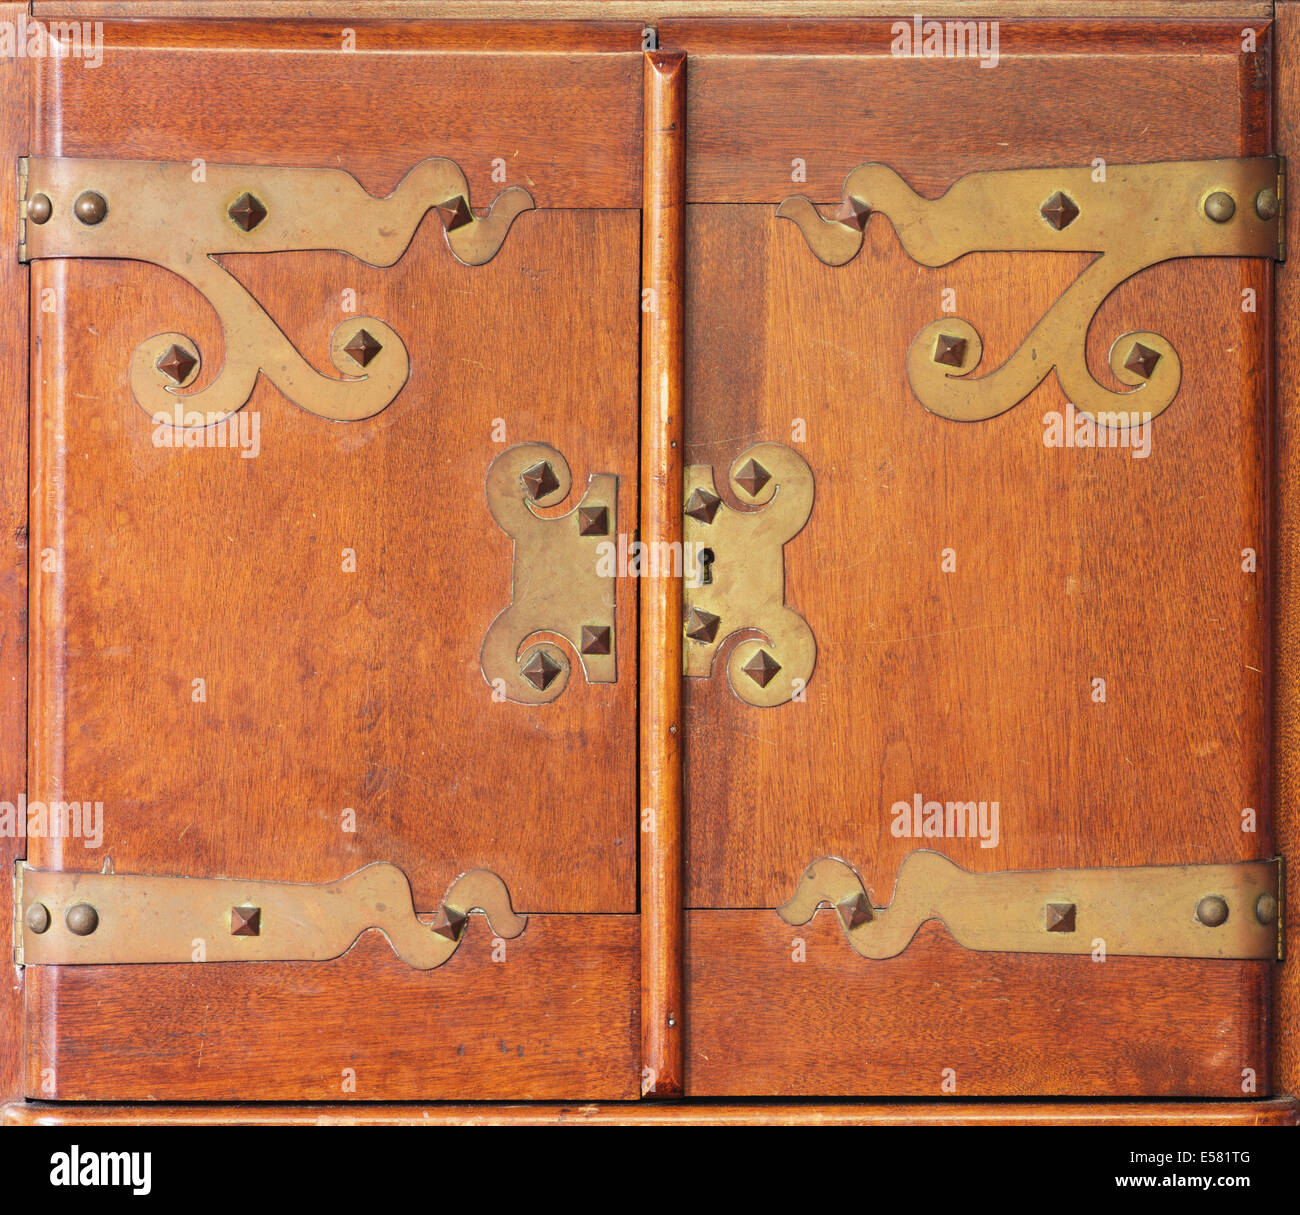 antique wood cabinet doors with brass hinges and lock - Antique Wood Cabinet Doors With Brass Hinges And Lock Stock Photo